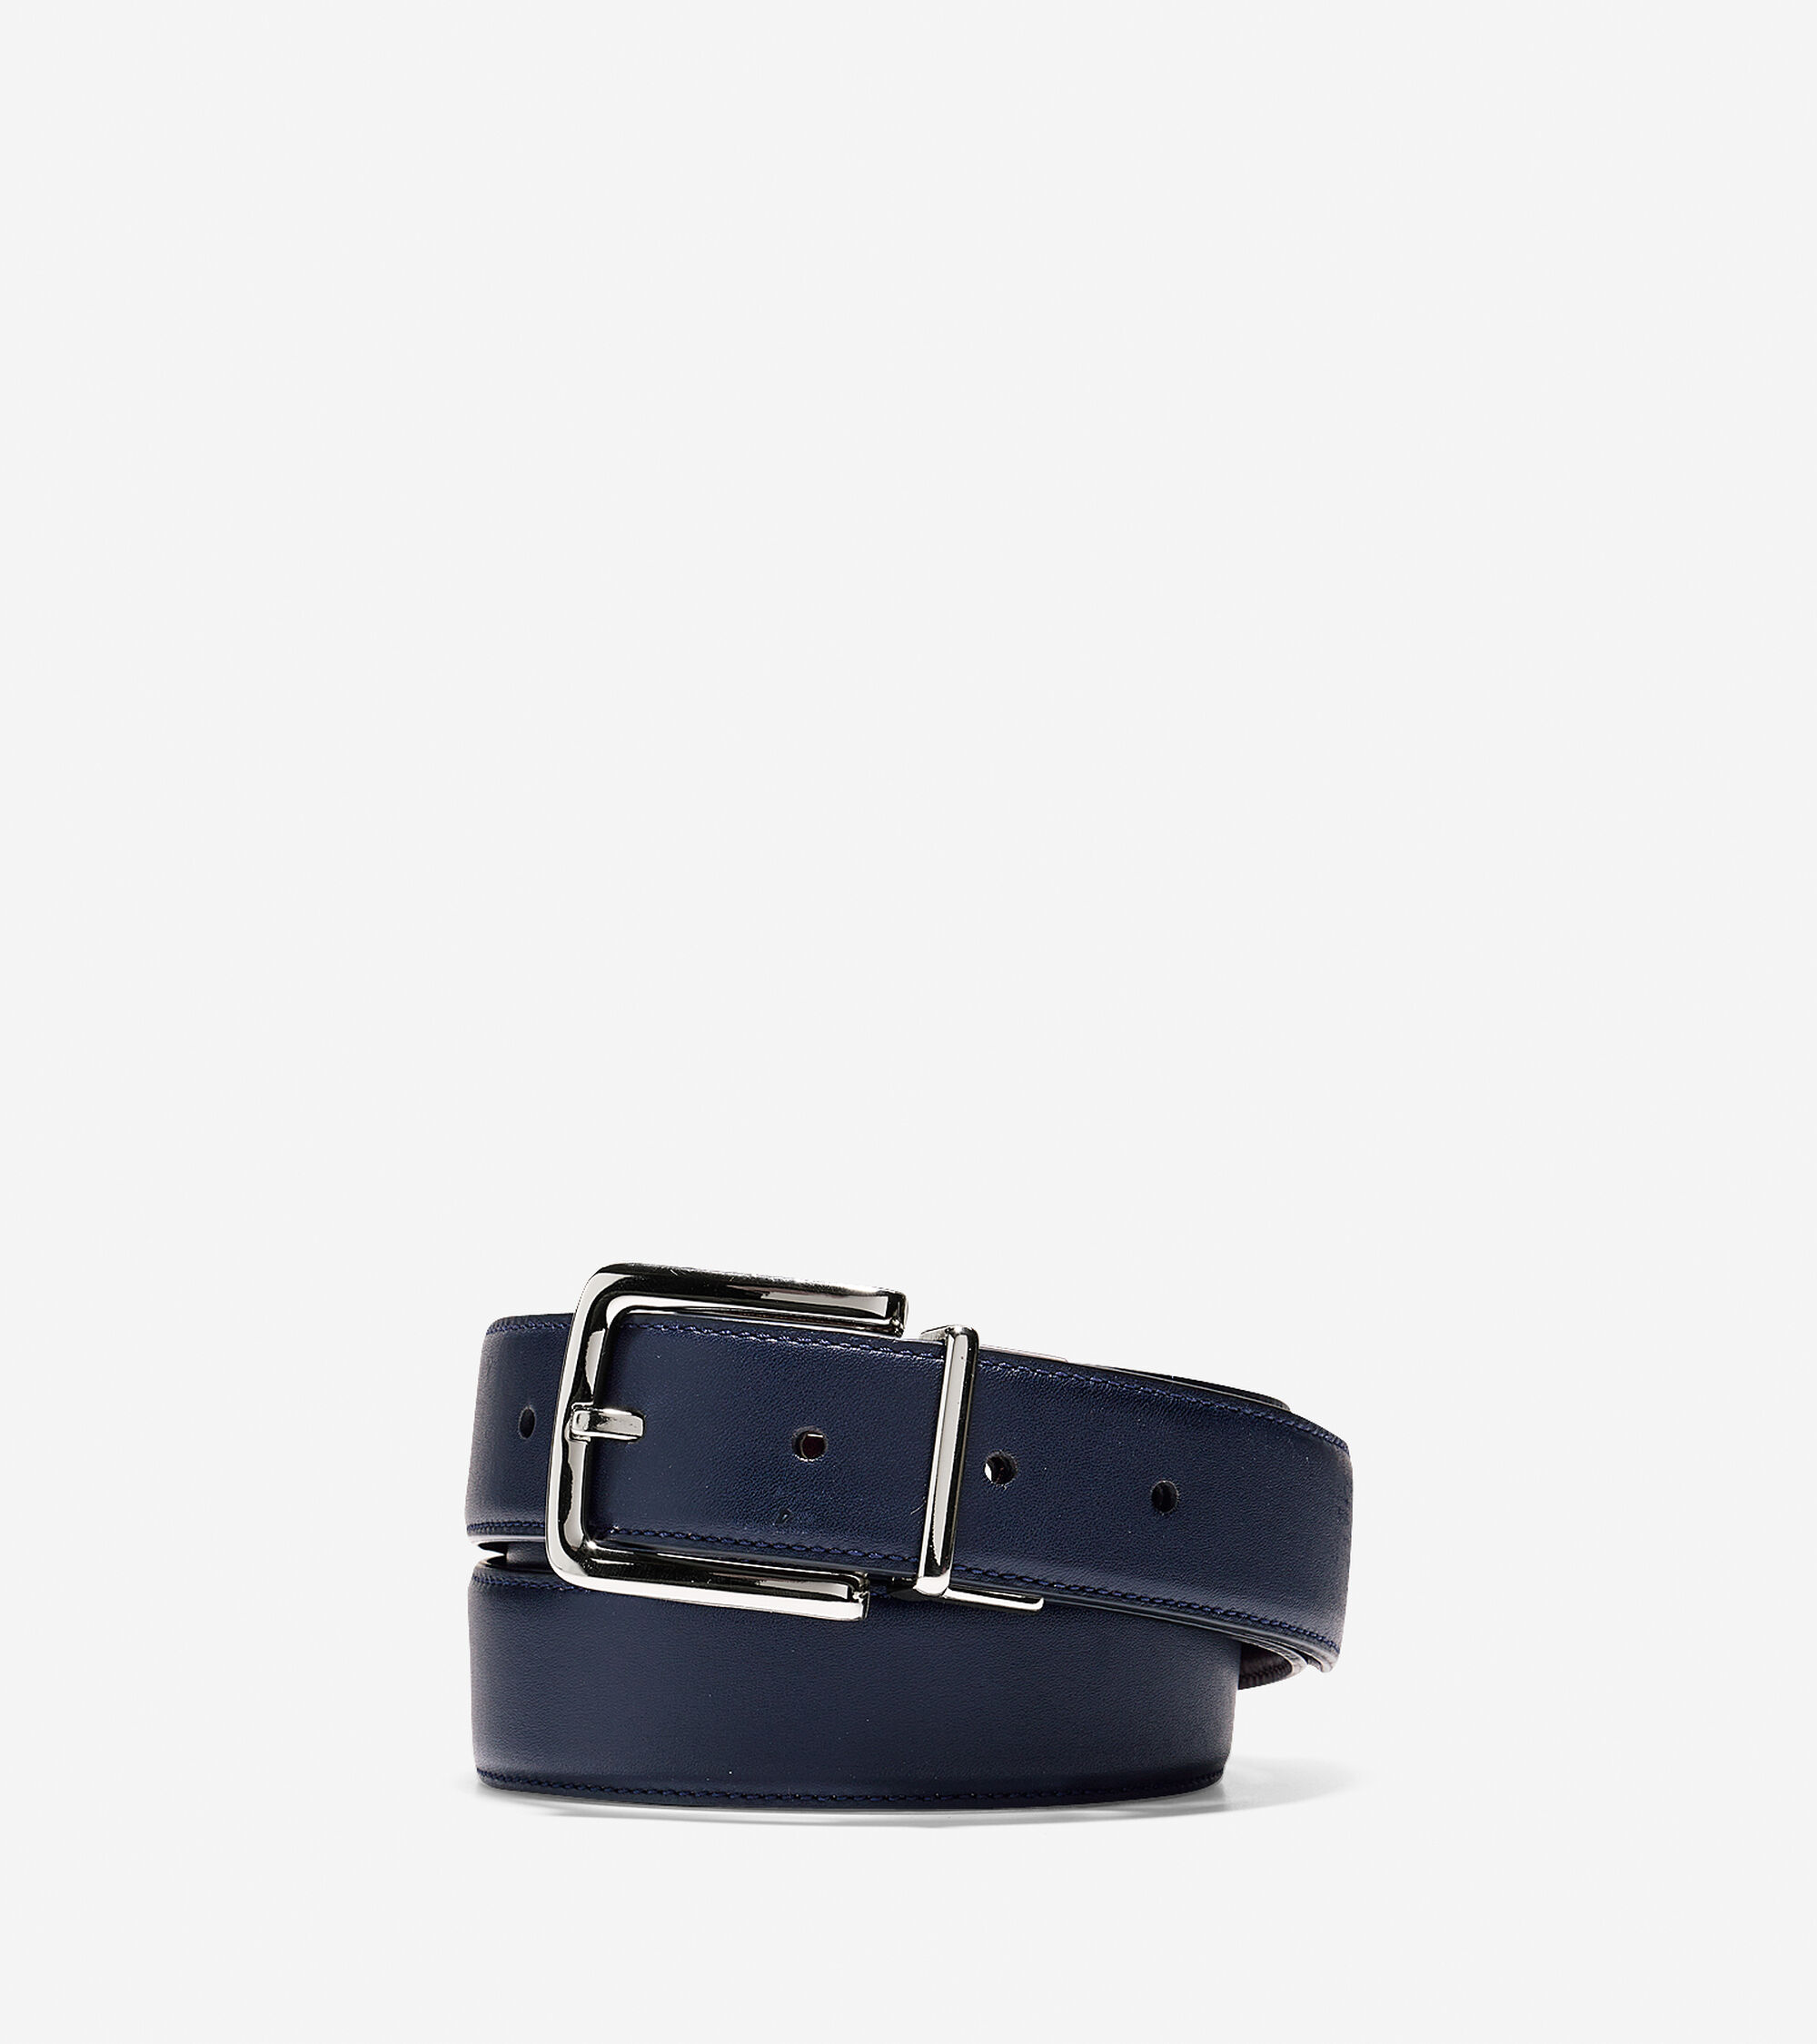 Accessories > 32mm Reversible Dress Leather Belt